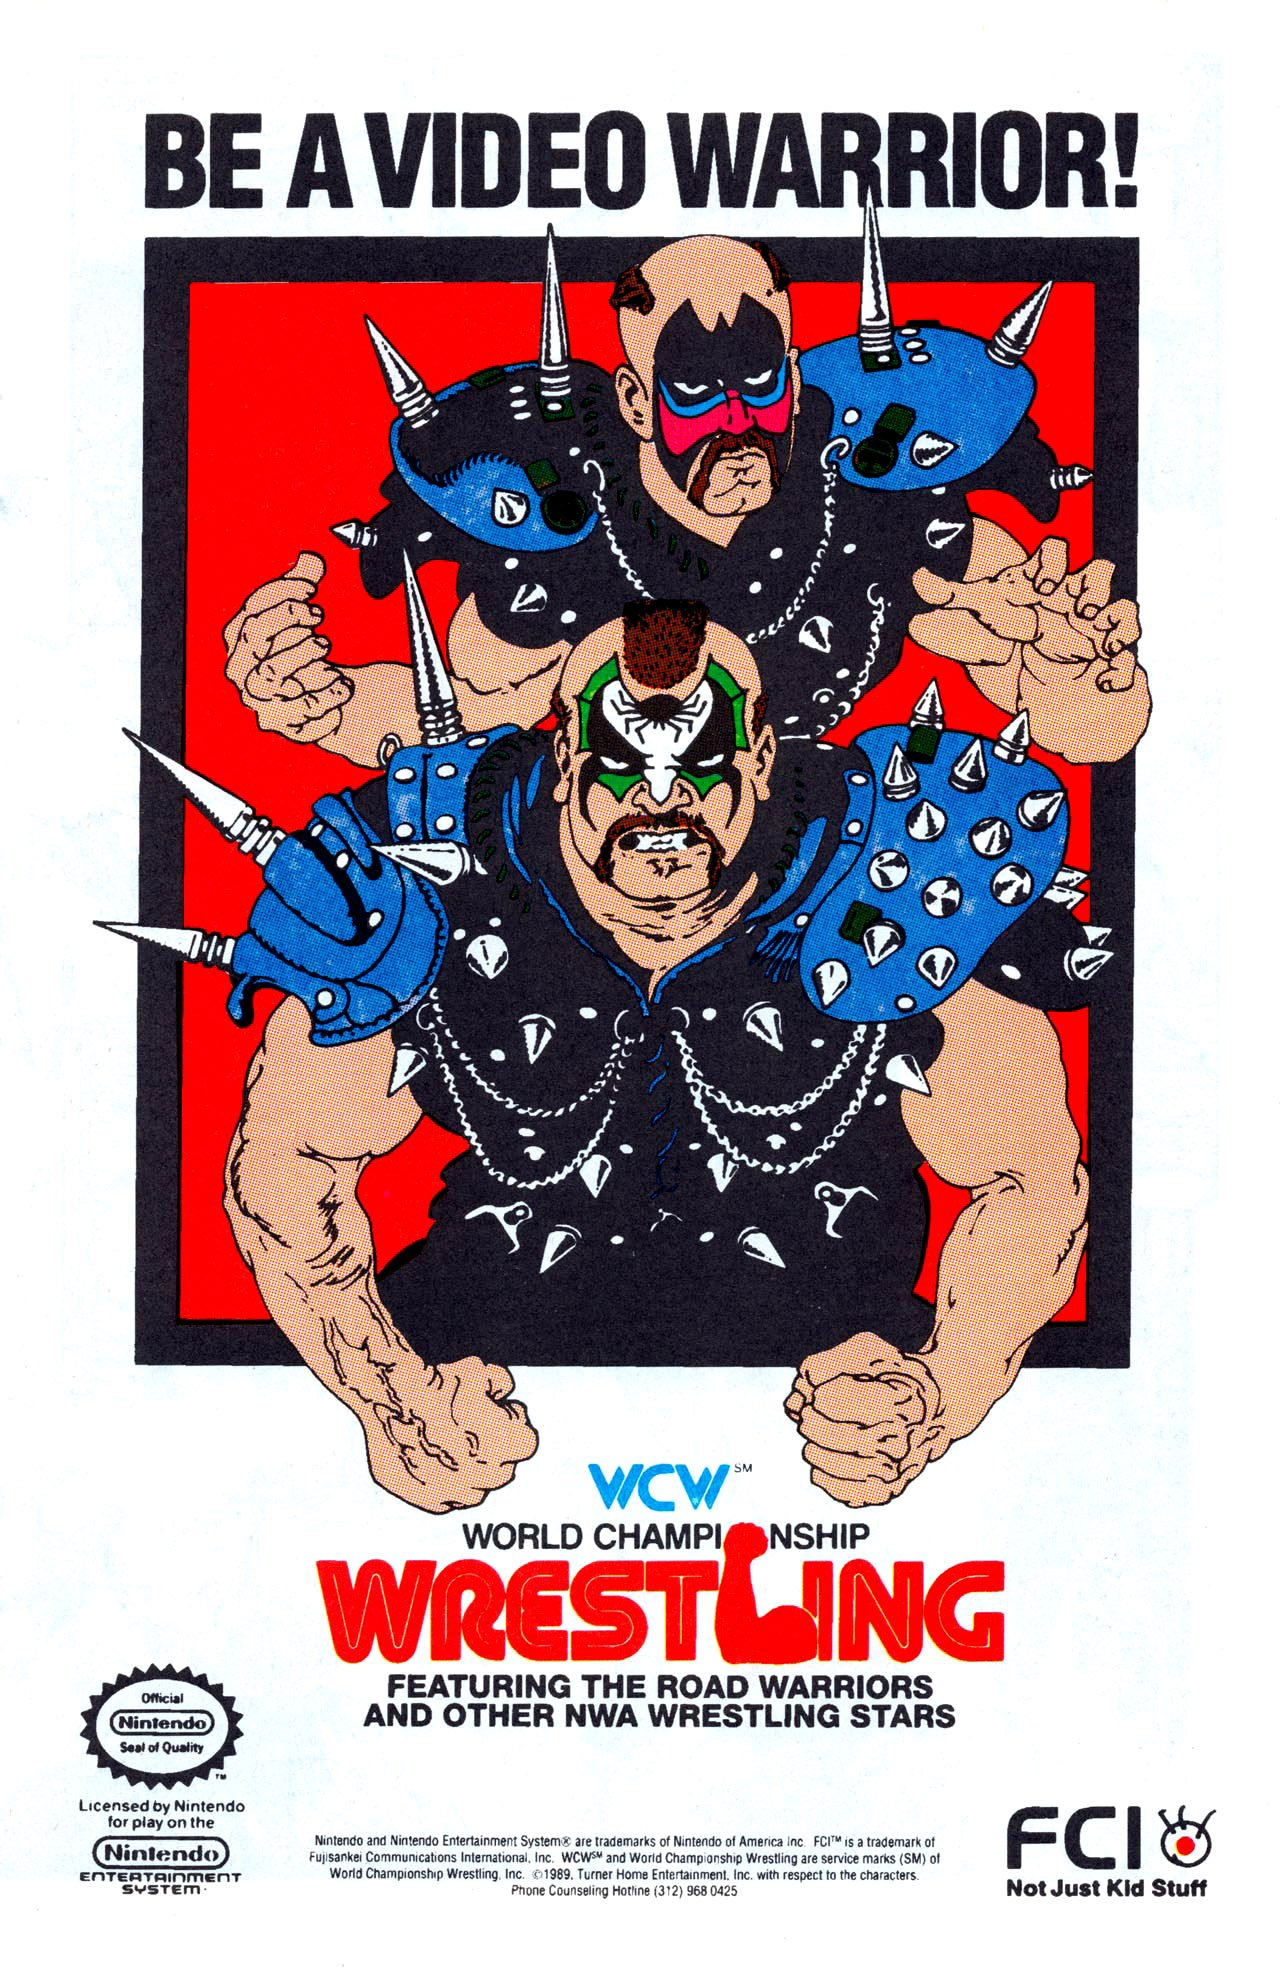 WCW: World Championship Wrestling